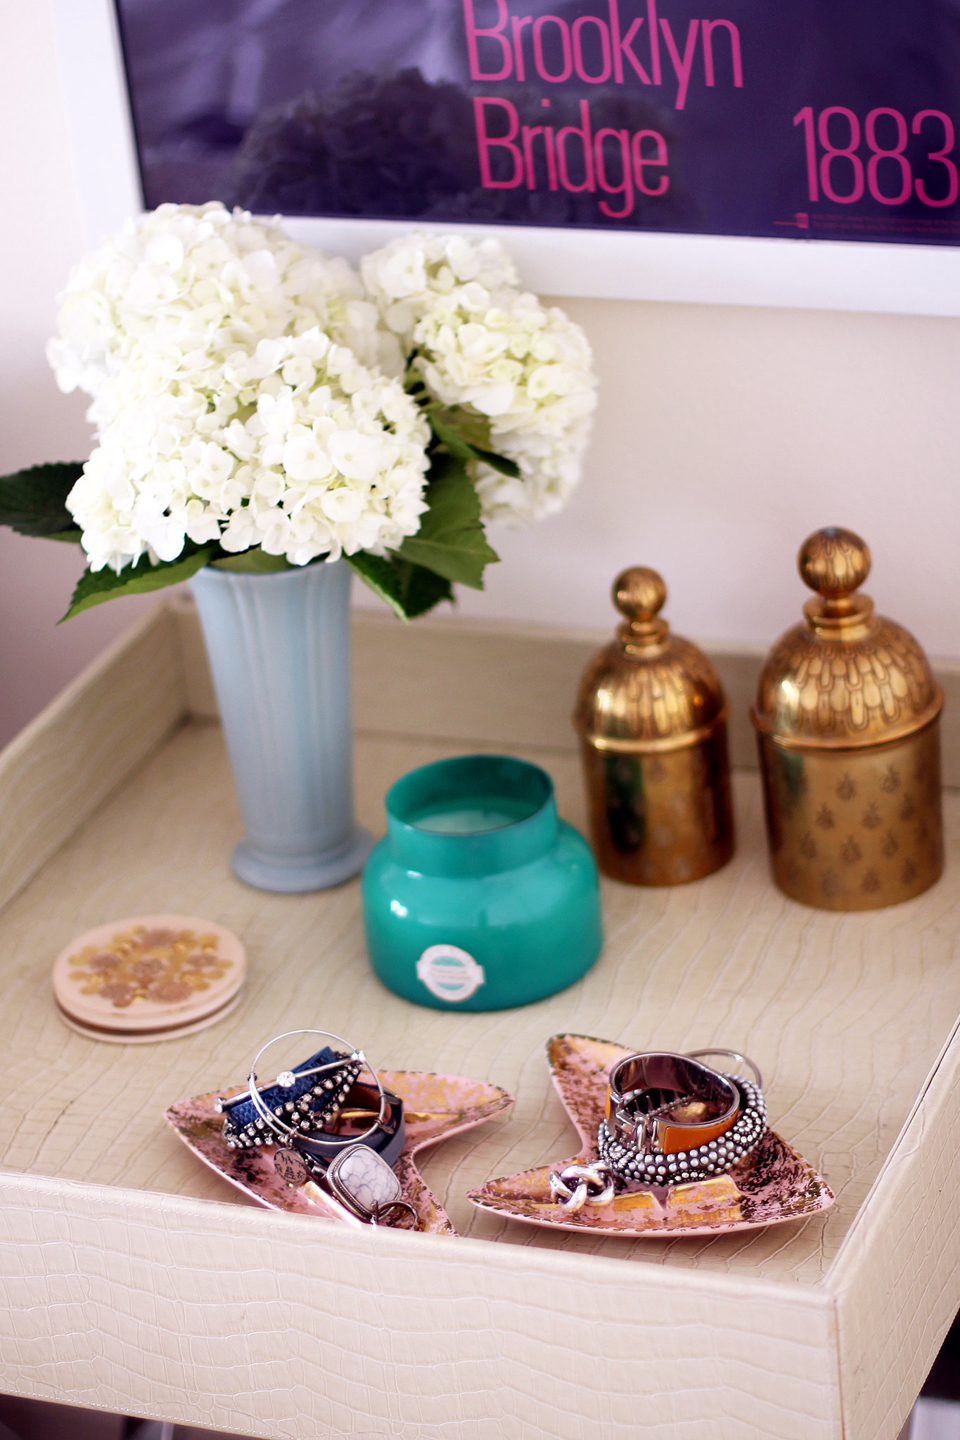 8e7394dd979301bc_We-love-how-everything-her-apartment-mix-store-bought